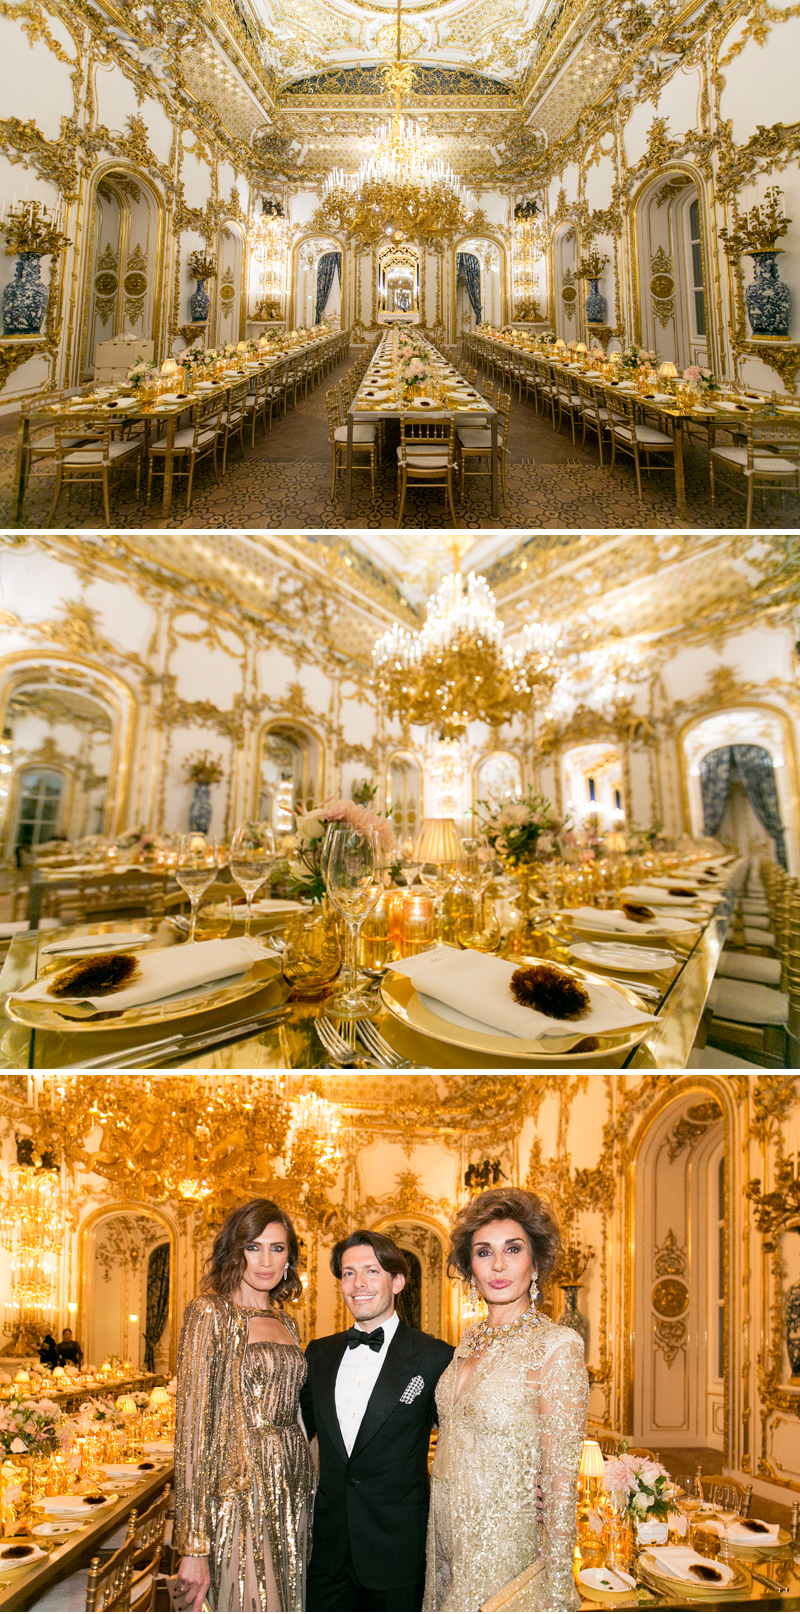 Aquazzura, Aquazzura X Mytheresa.com, Vienna, Woman in Gold, Liechtenstein Palace, Gold Wedding Decor Inspiration, Perfect Wedding Magazine, Perfect Wedding Blog